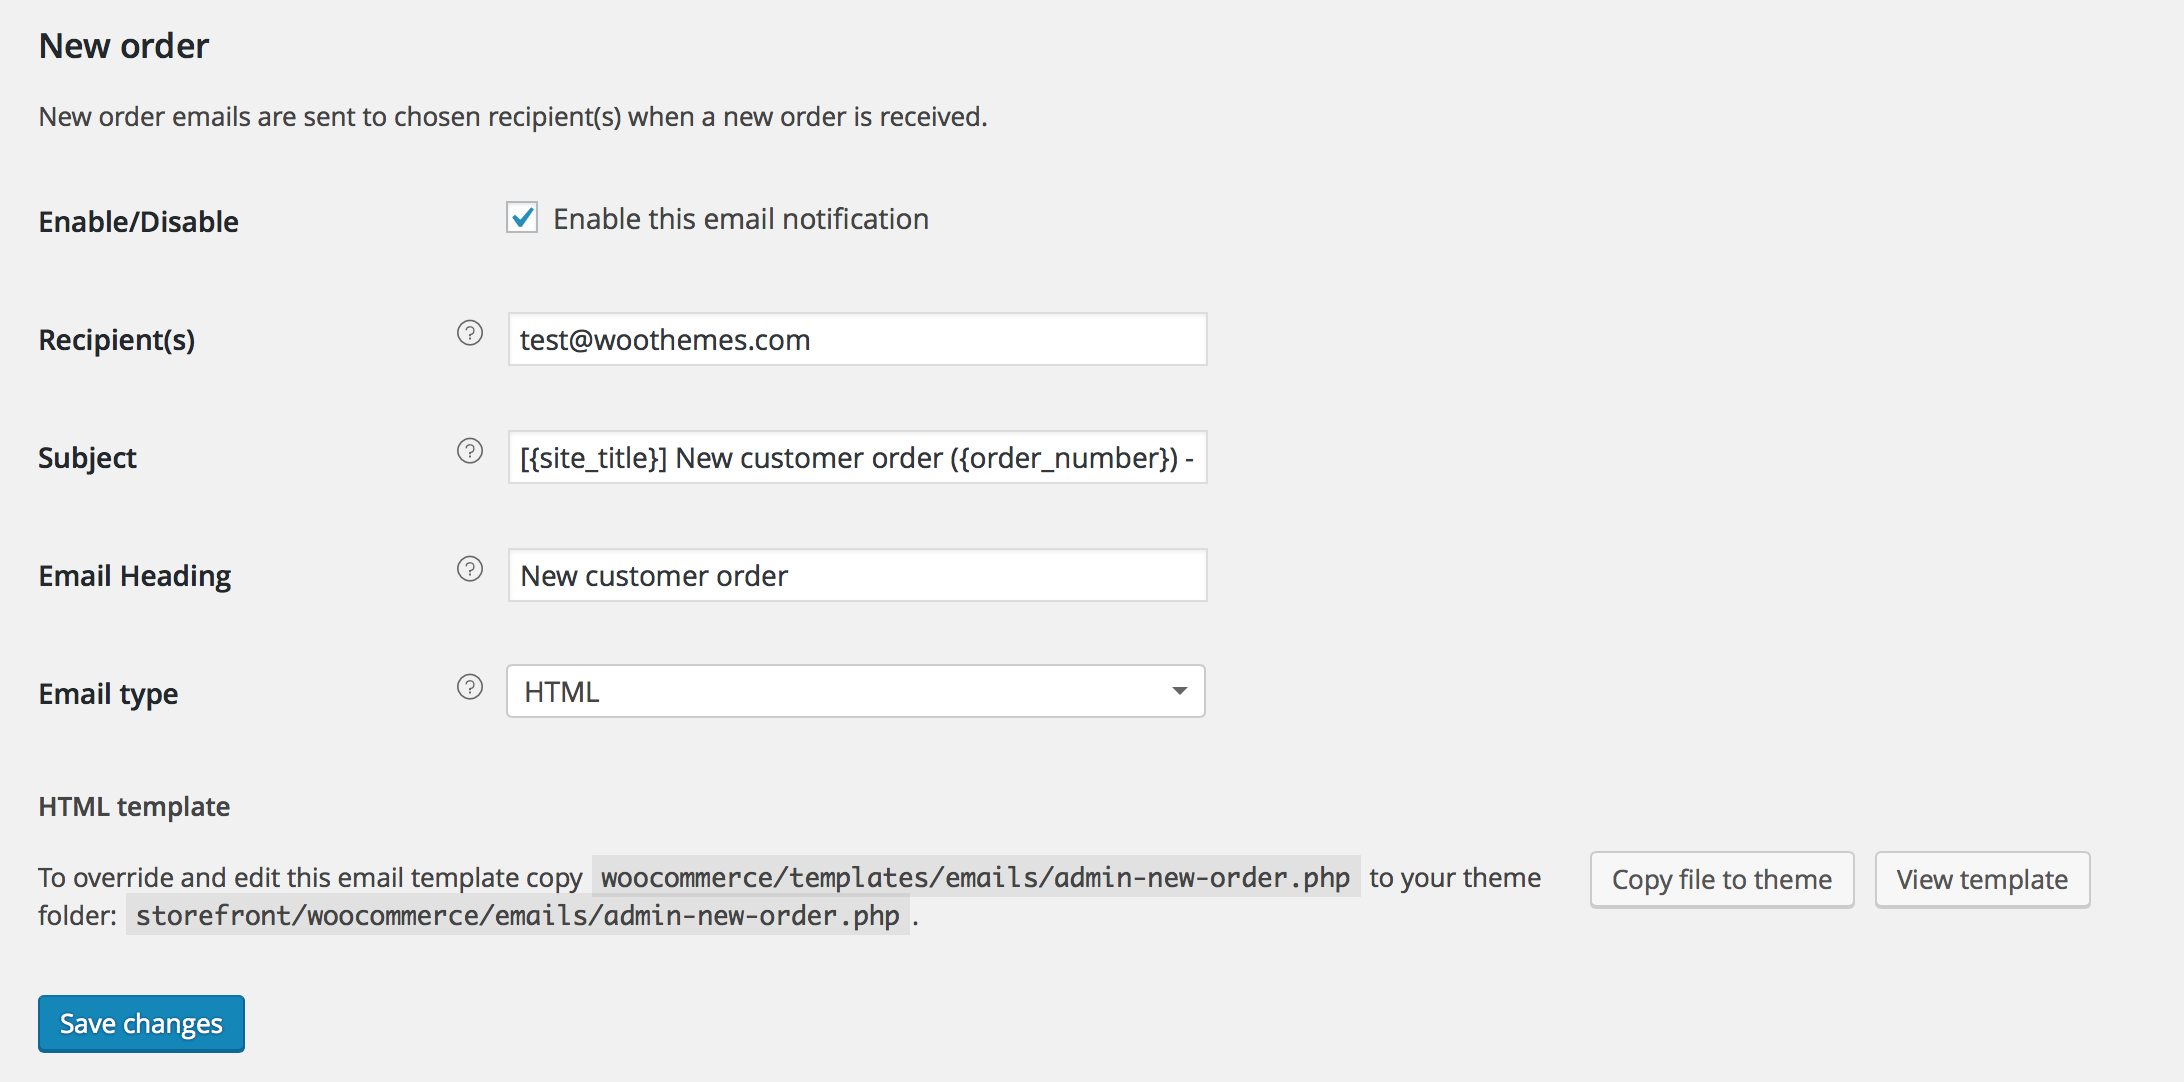 Shop customer account create/downloader - Woocommerce Email Options